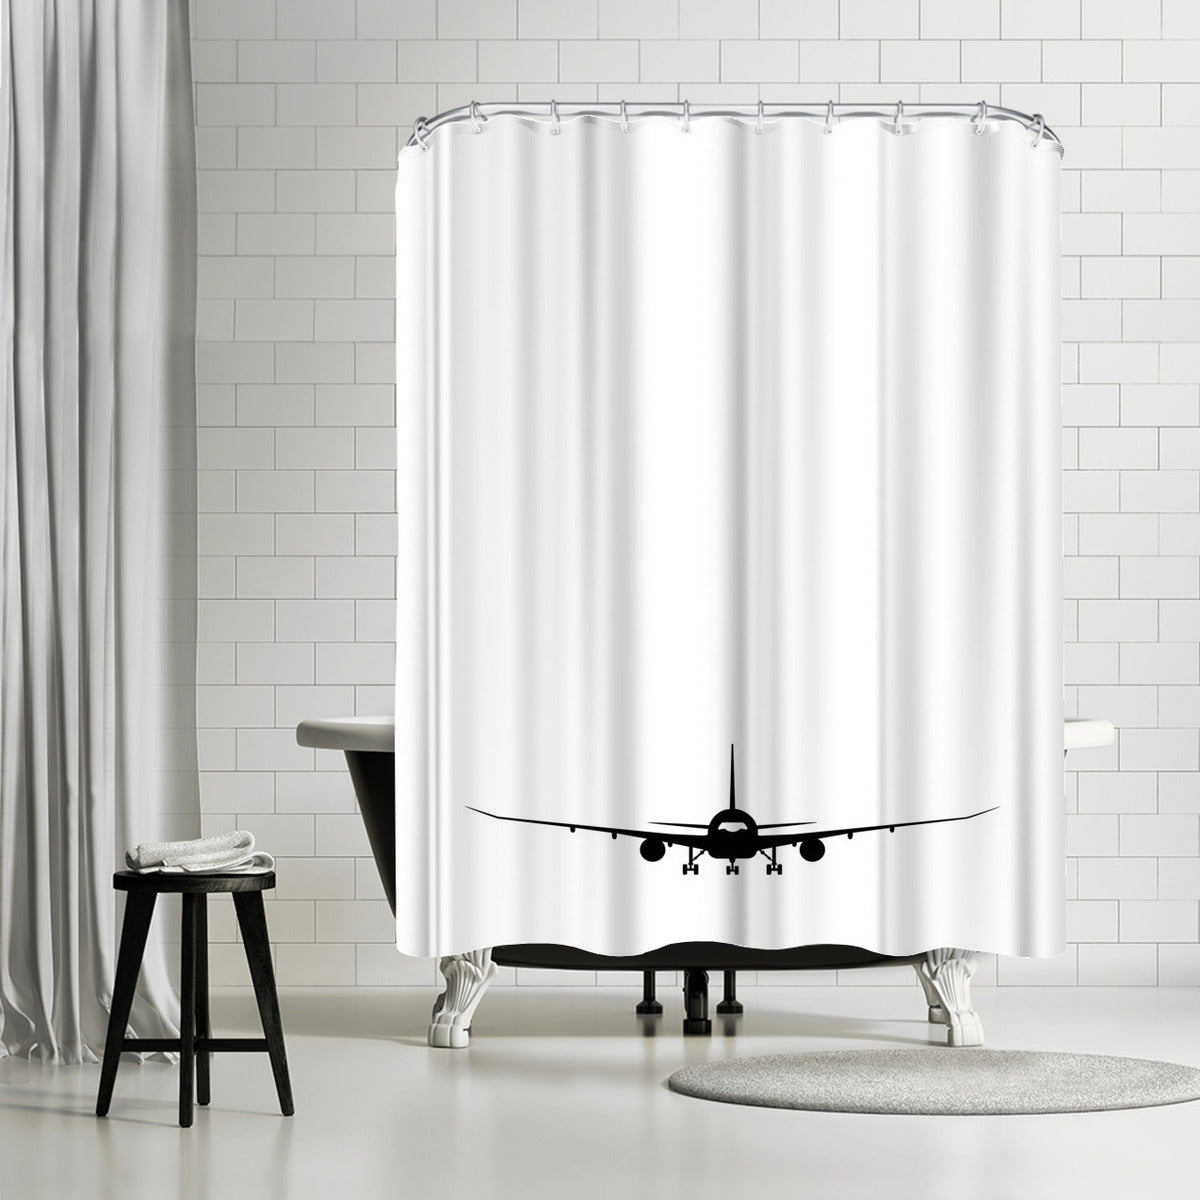 Plane Silhouette by Explicit Design Shower Curtain - Shower Curtain - Americanflat